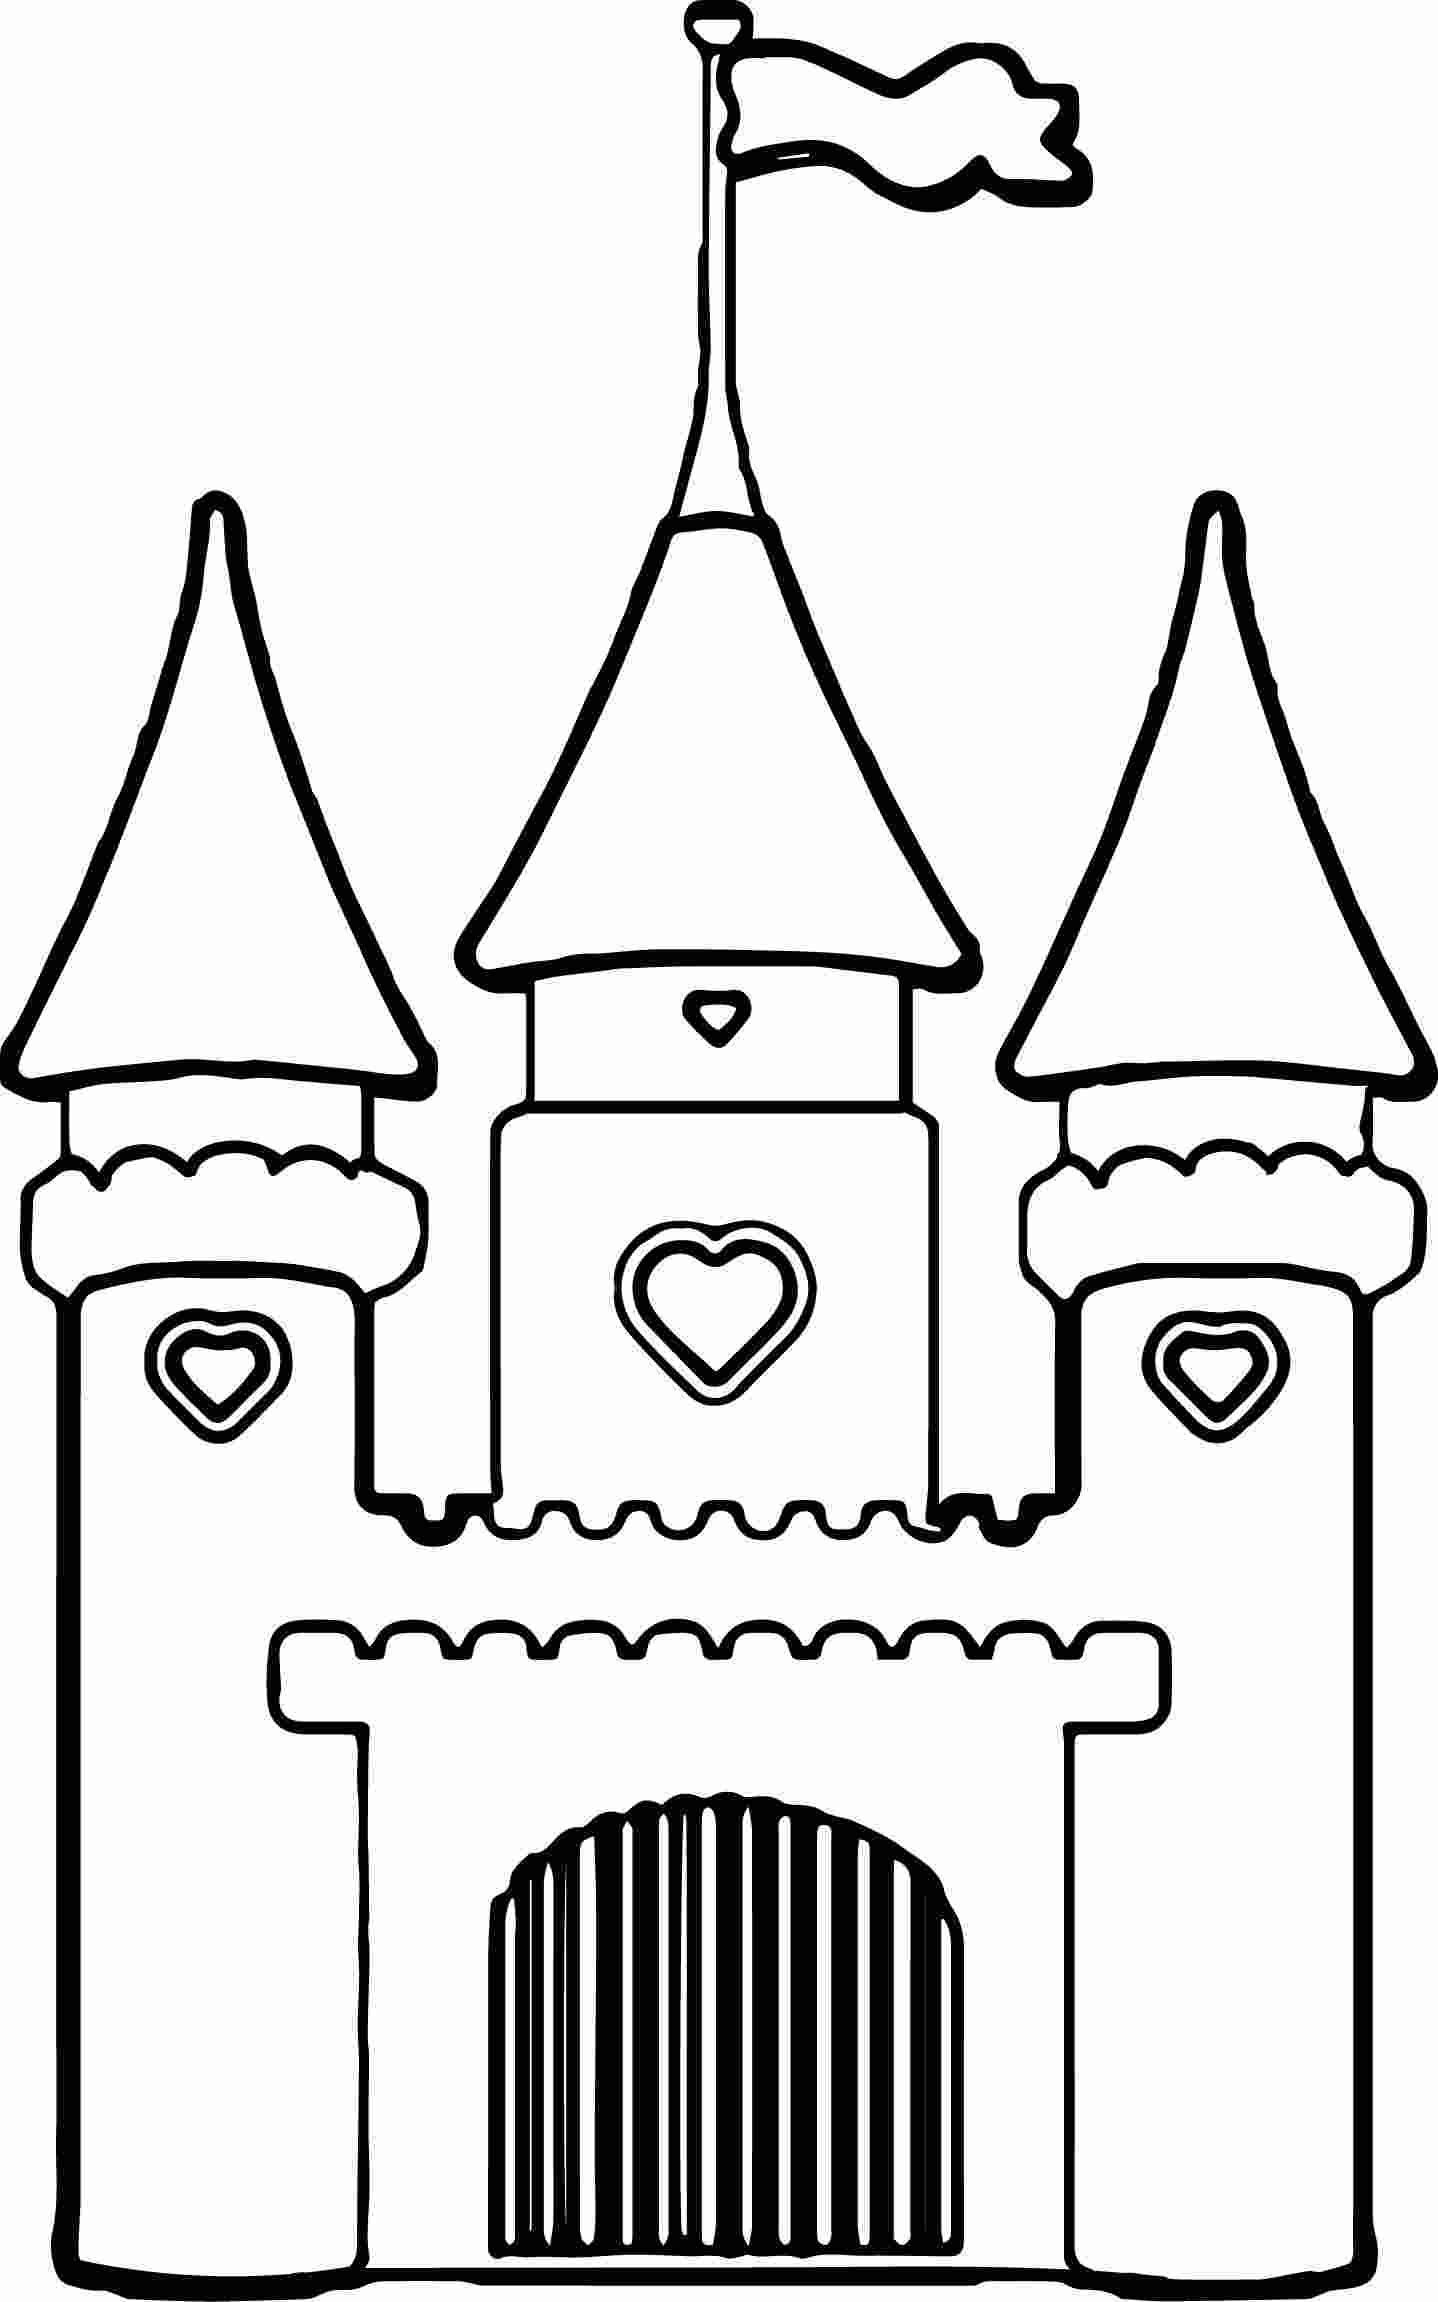 27+ Princess palace coloring pages information